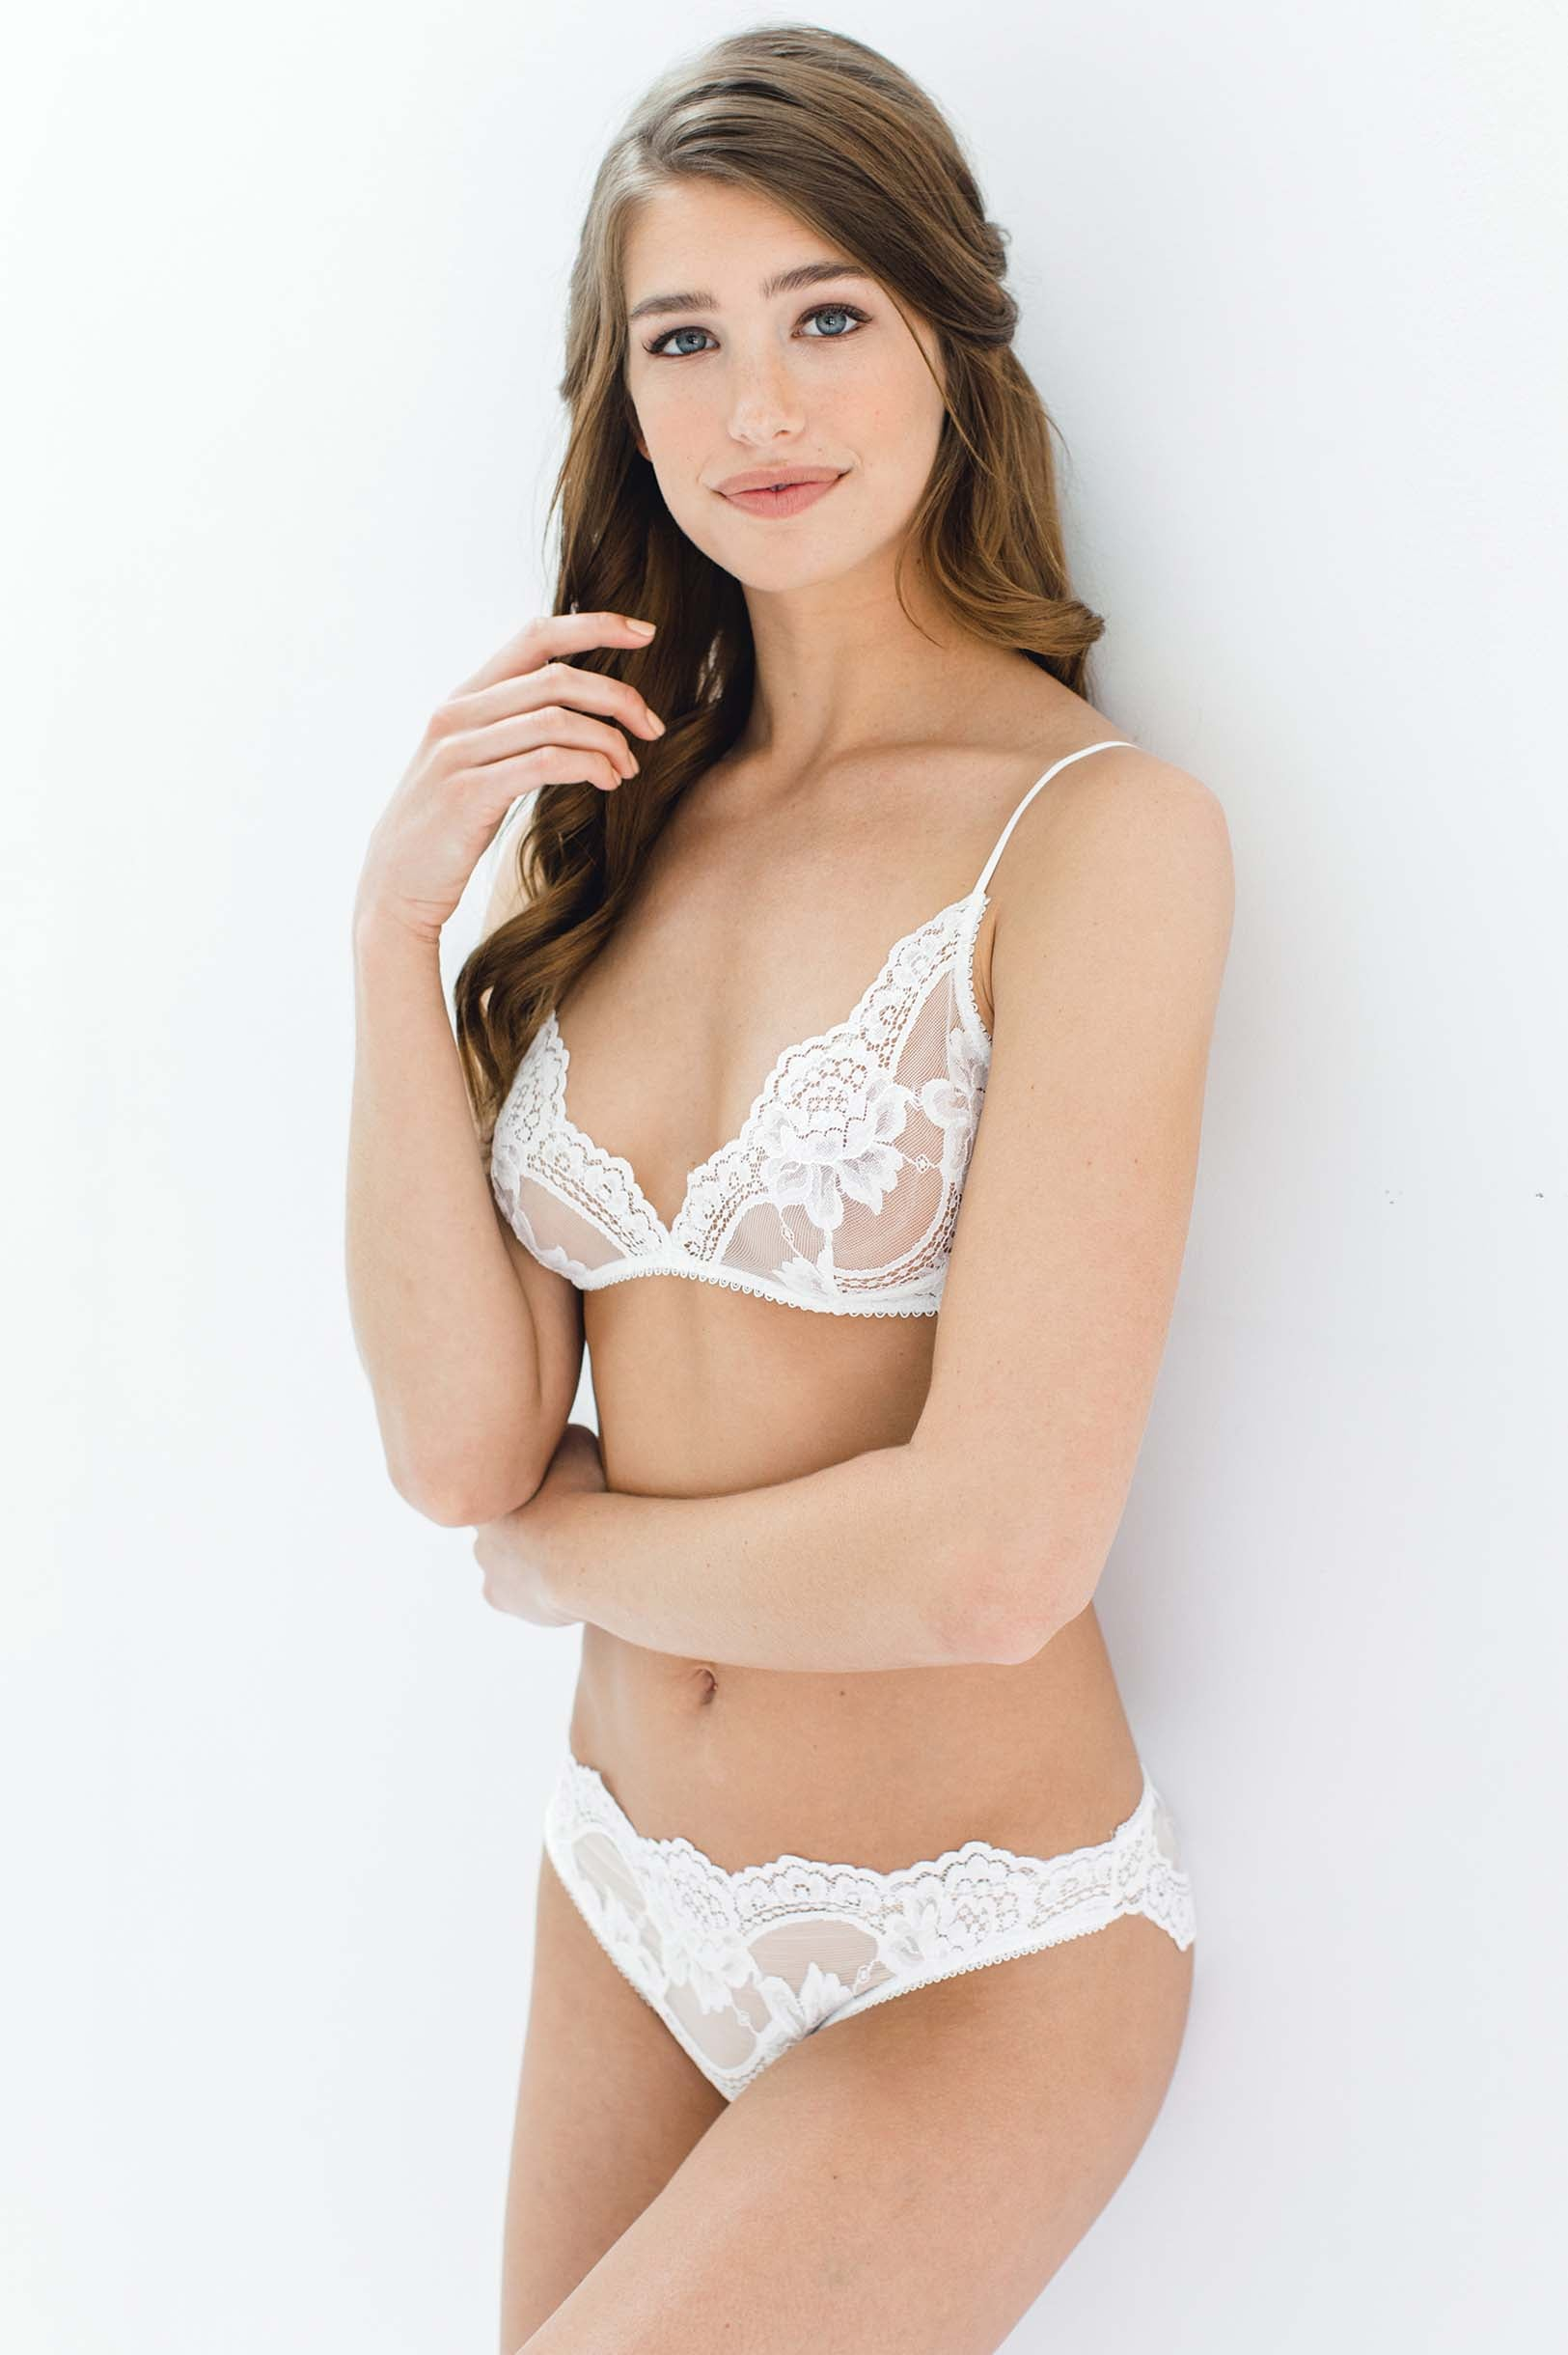 ef40ade090 Rosa Scalloped French Lace Bralette in Ivory